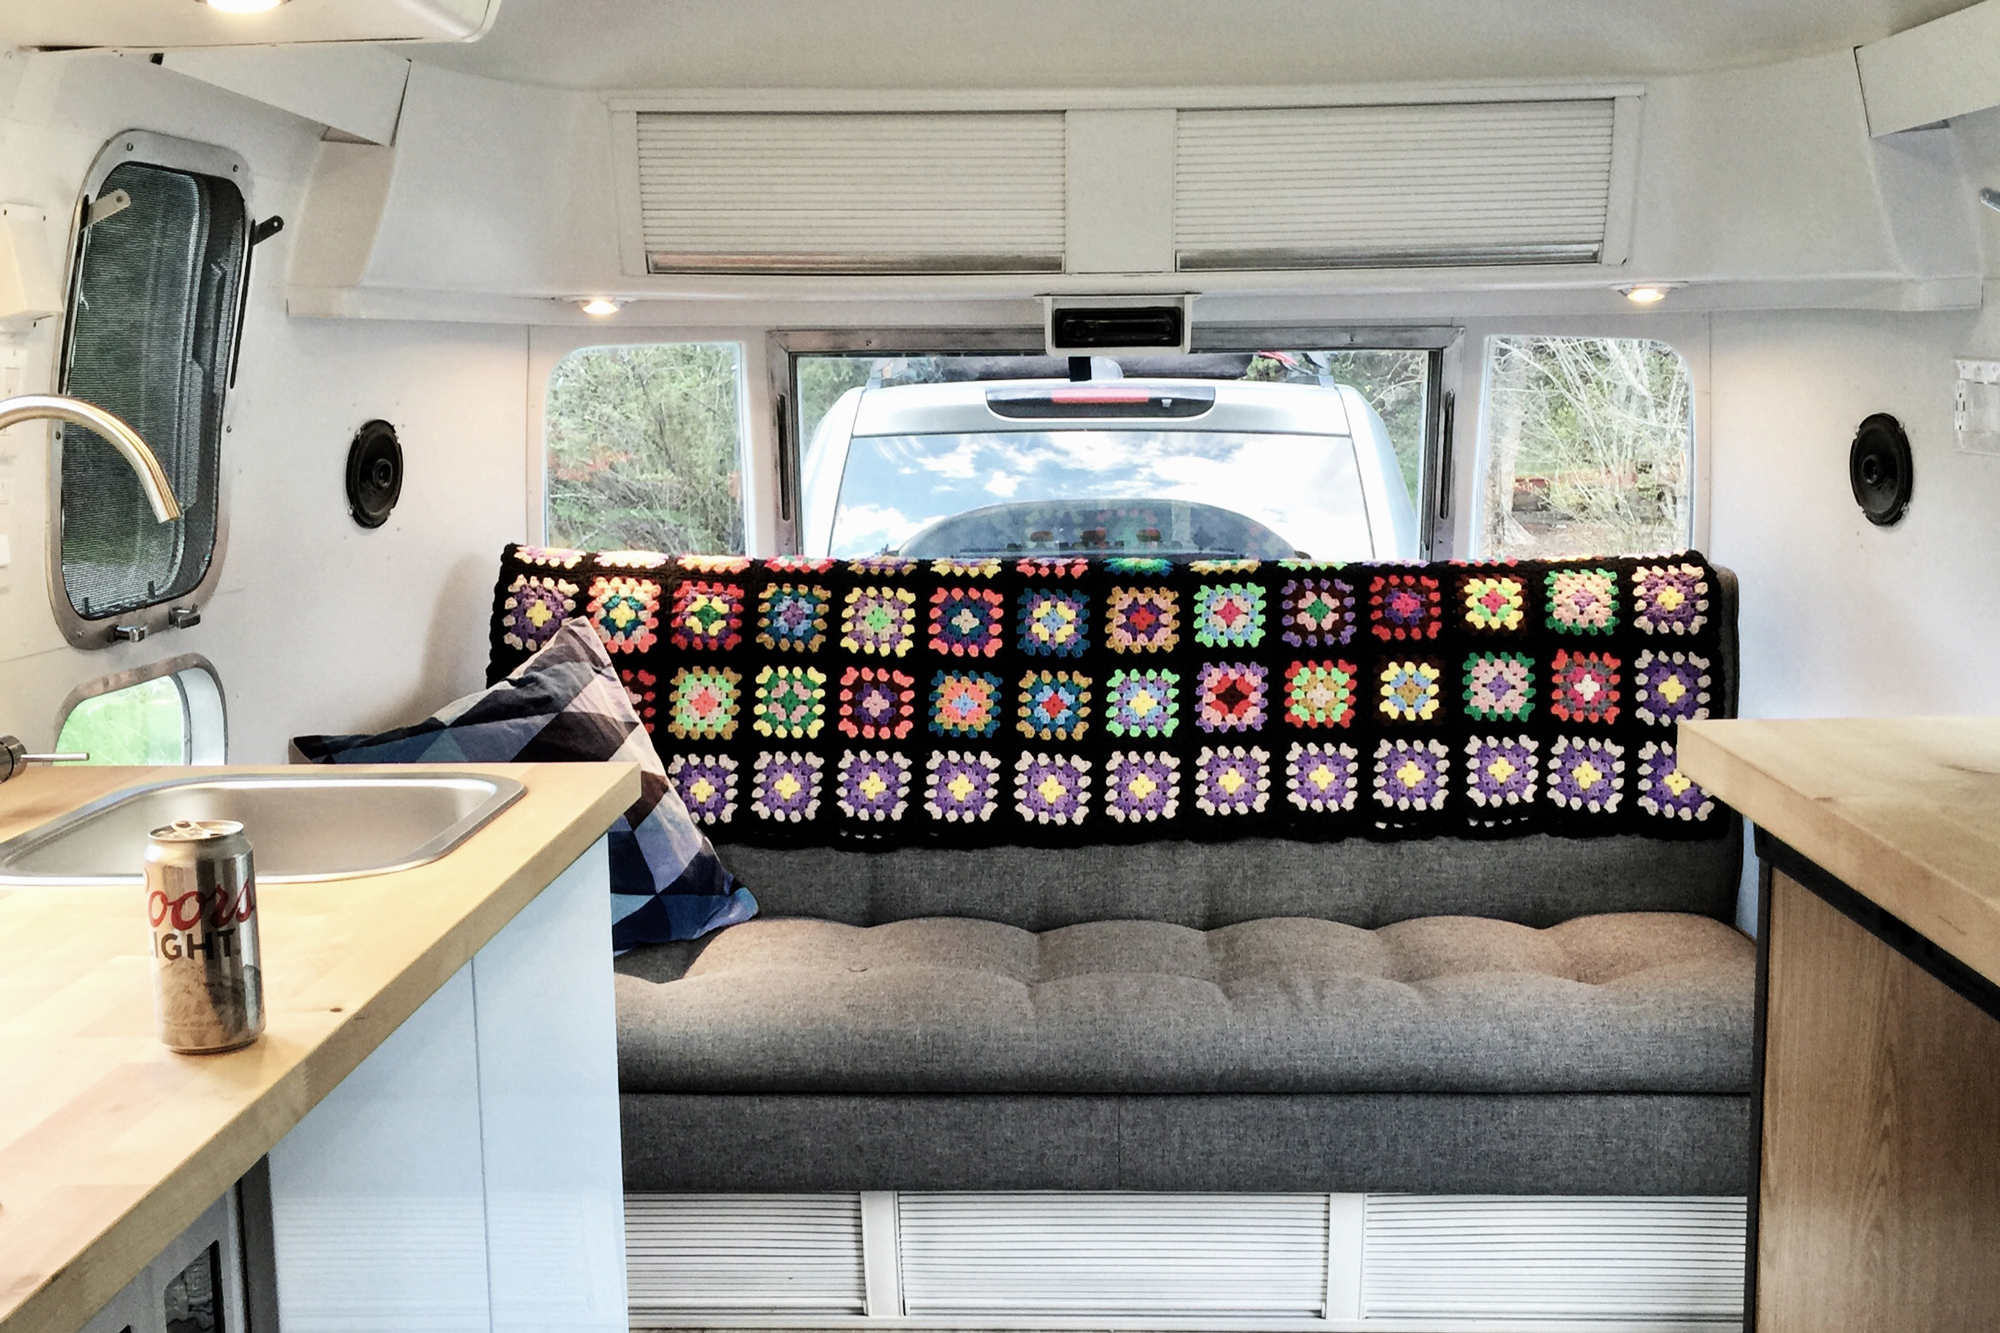 How to Share an Airstream: One Co-Owner Breaks It Down